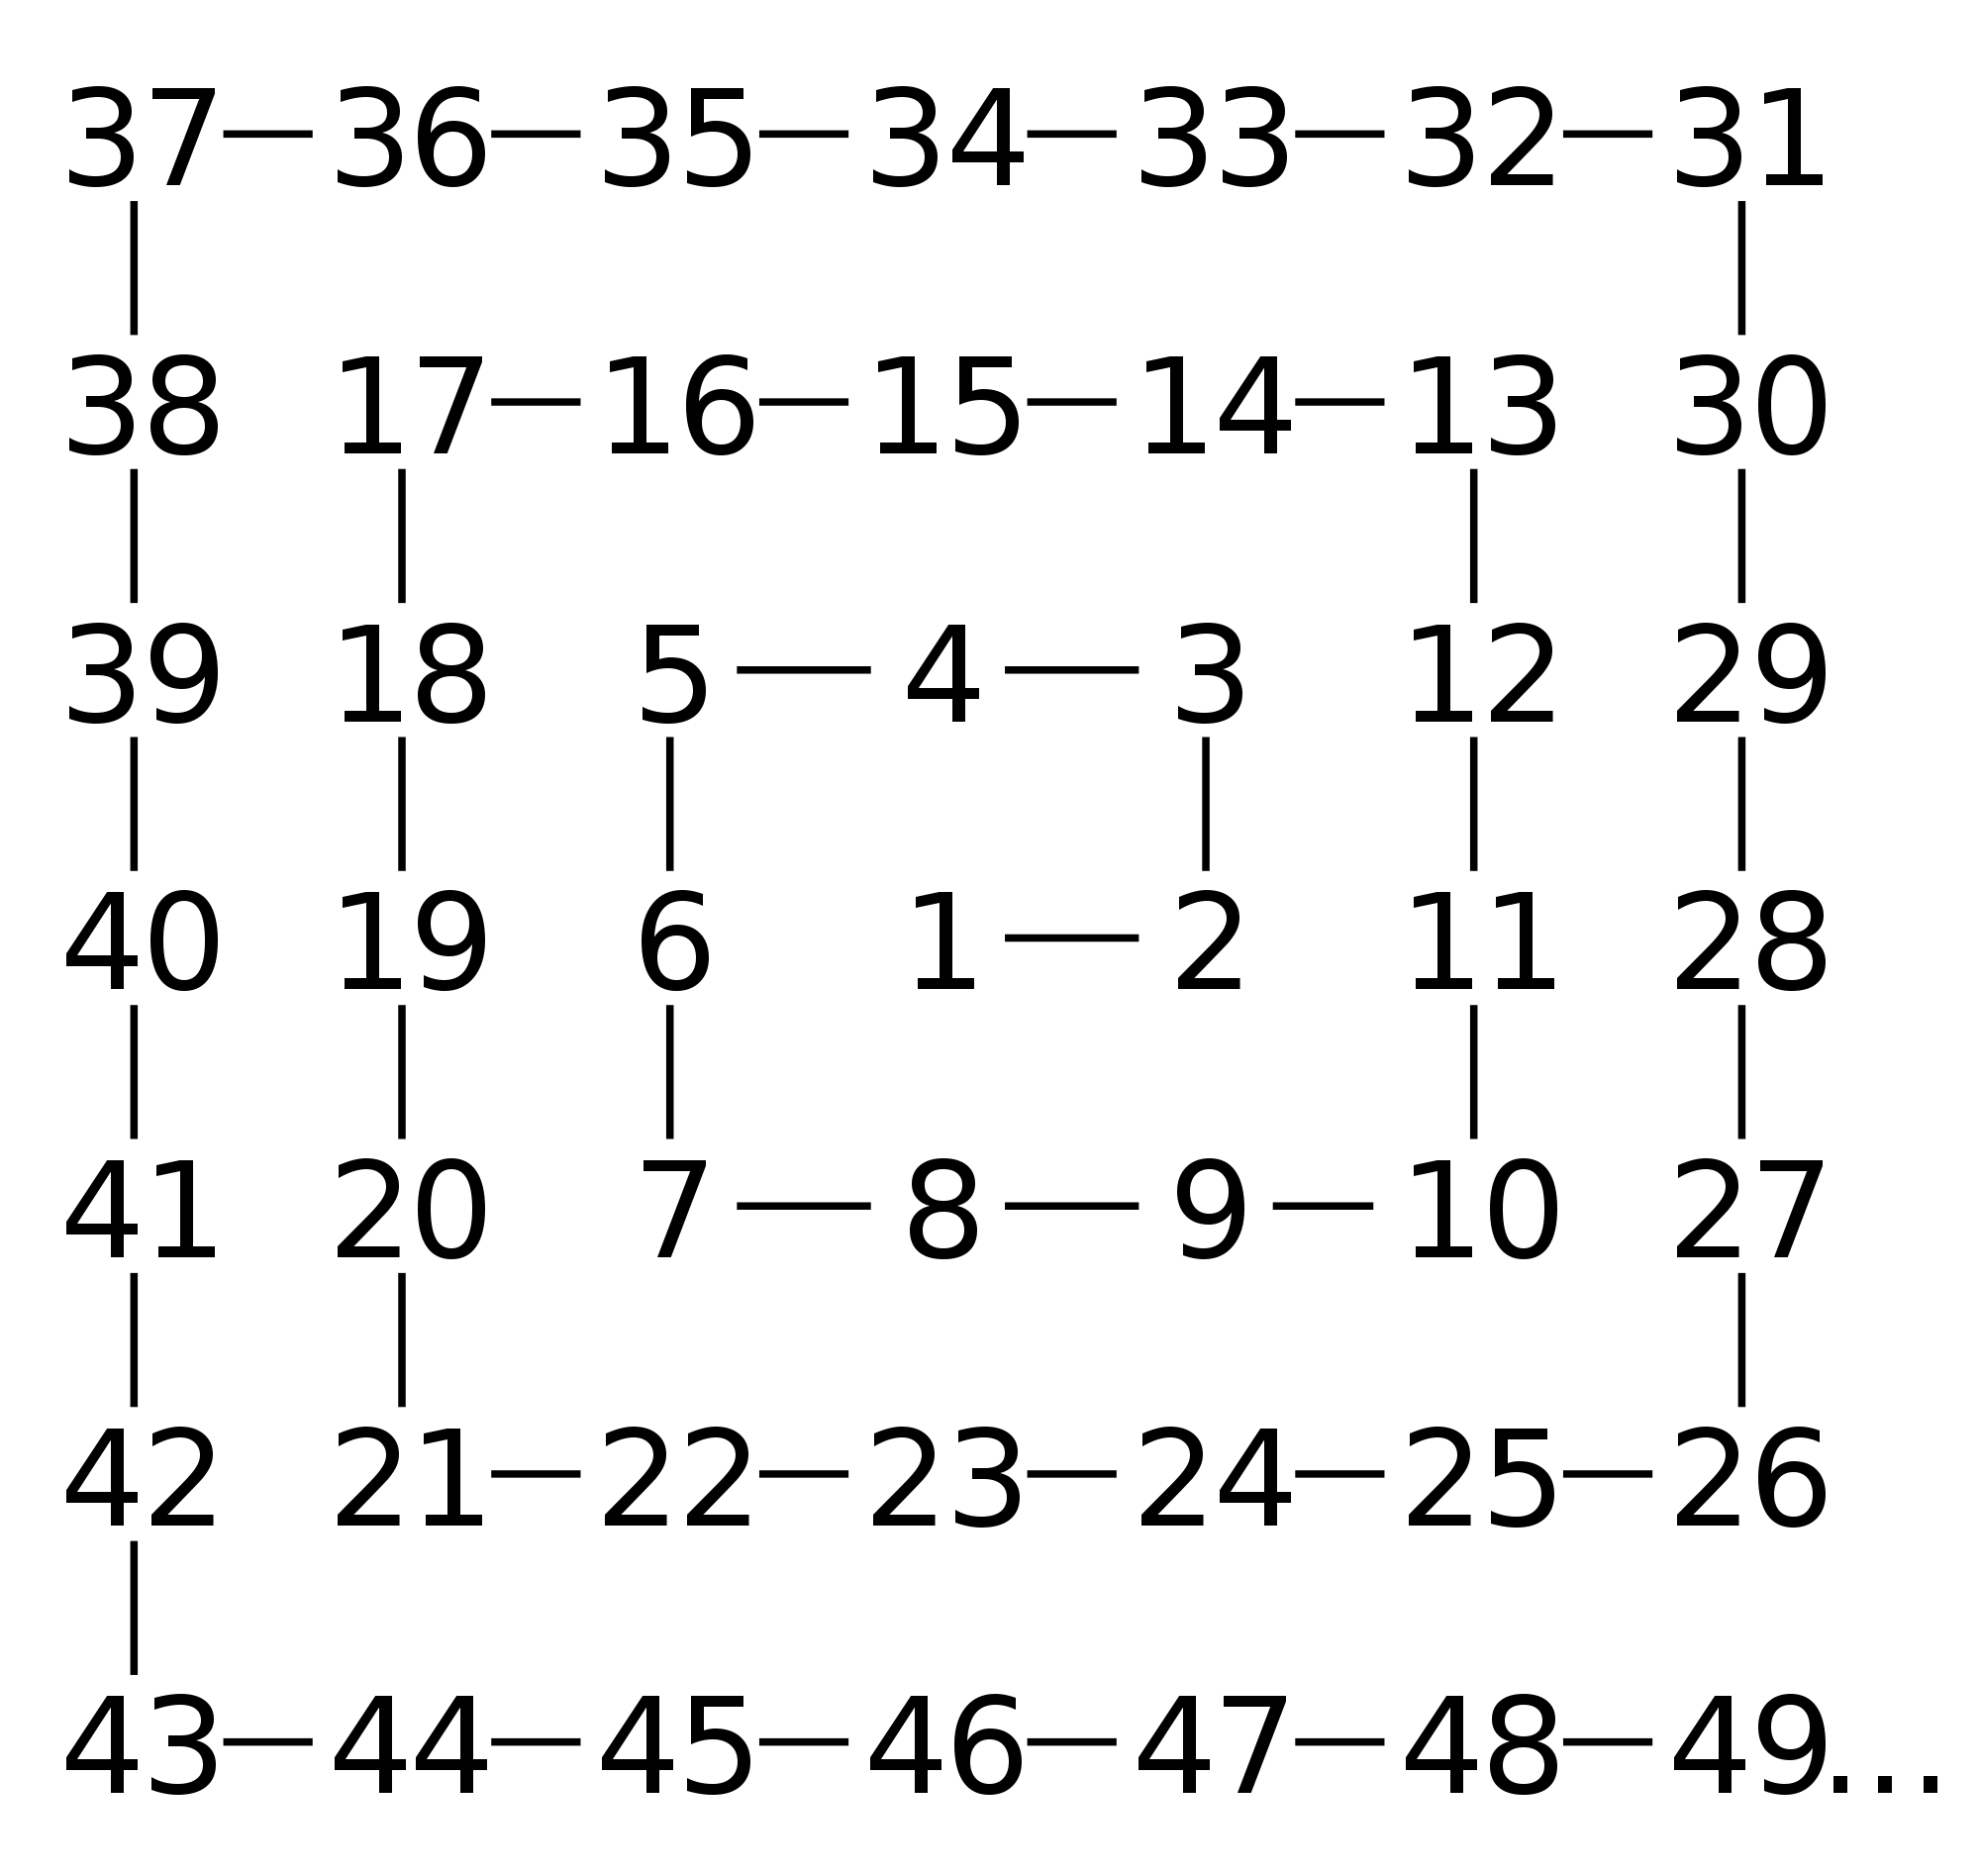 A 22 Million Digits Long Prime Number Has Been Discovered